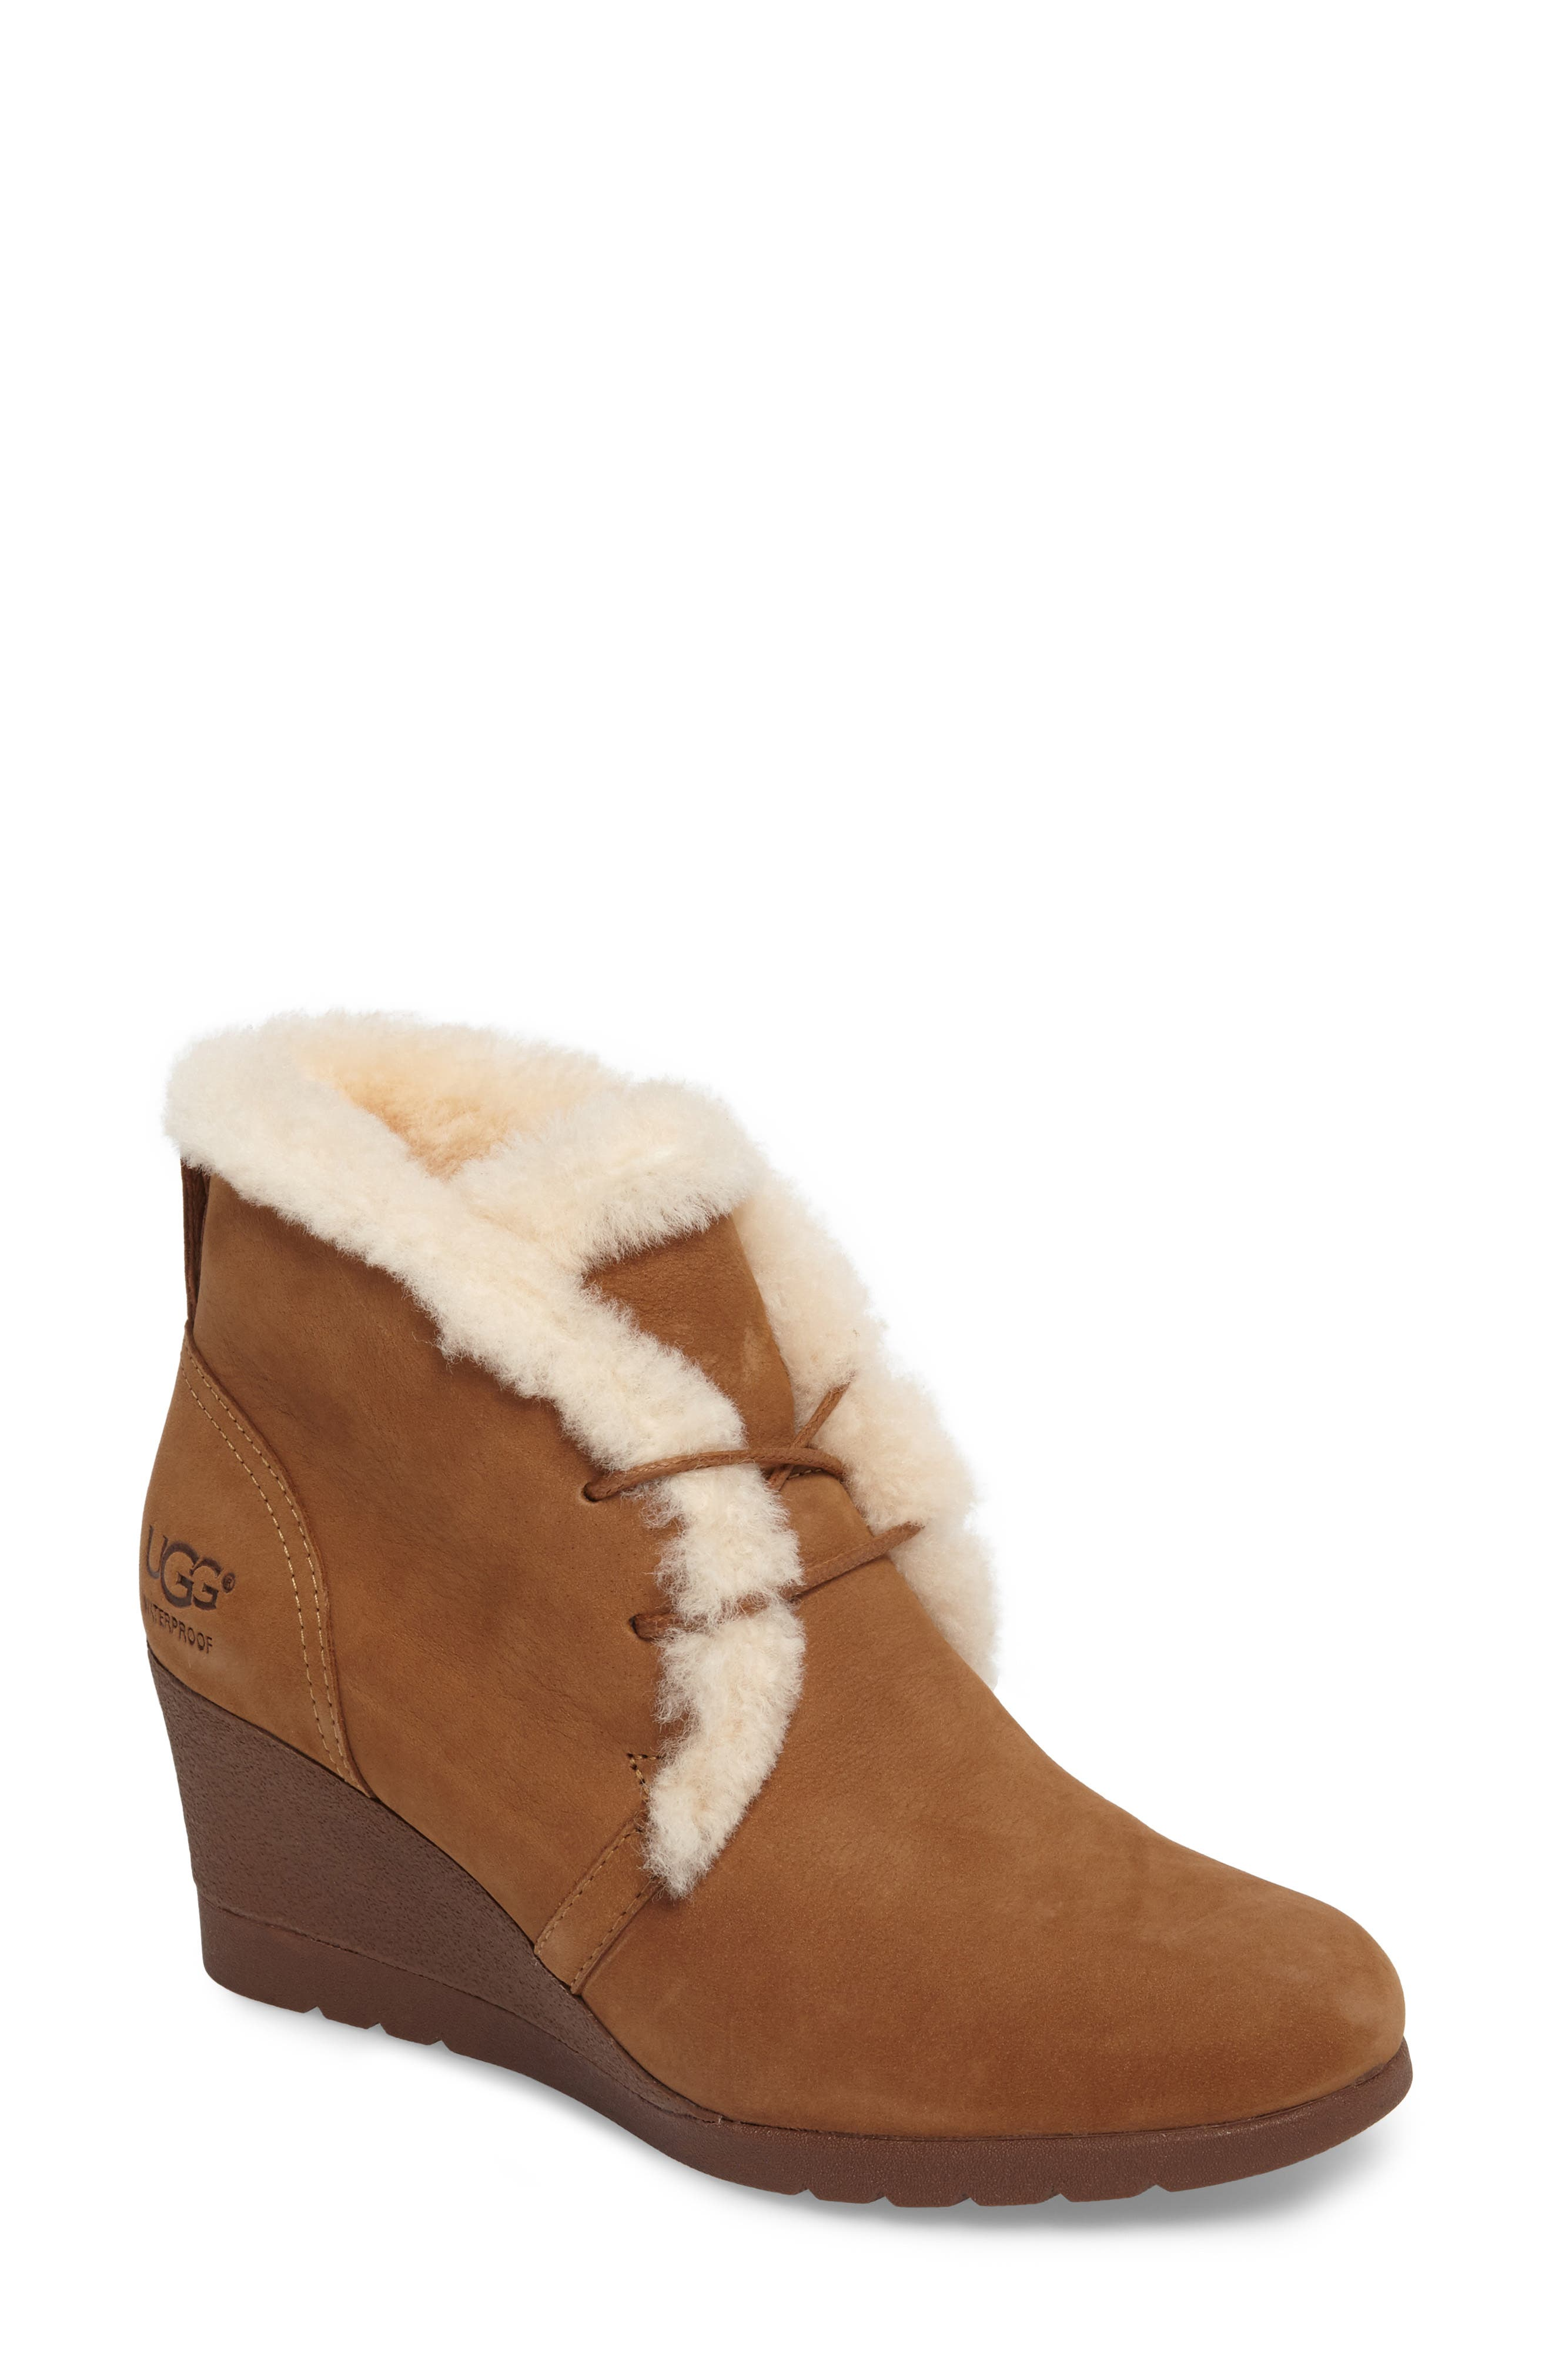 Alternate Image 1 Selected - UGG® Jeovana Genuine Shearling Lined Boot (Women)